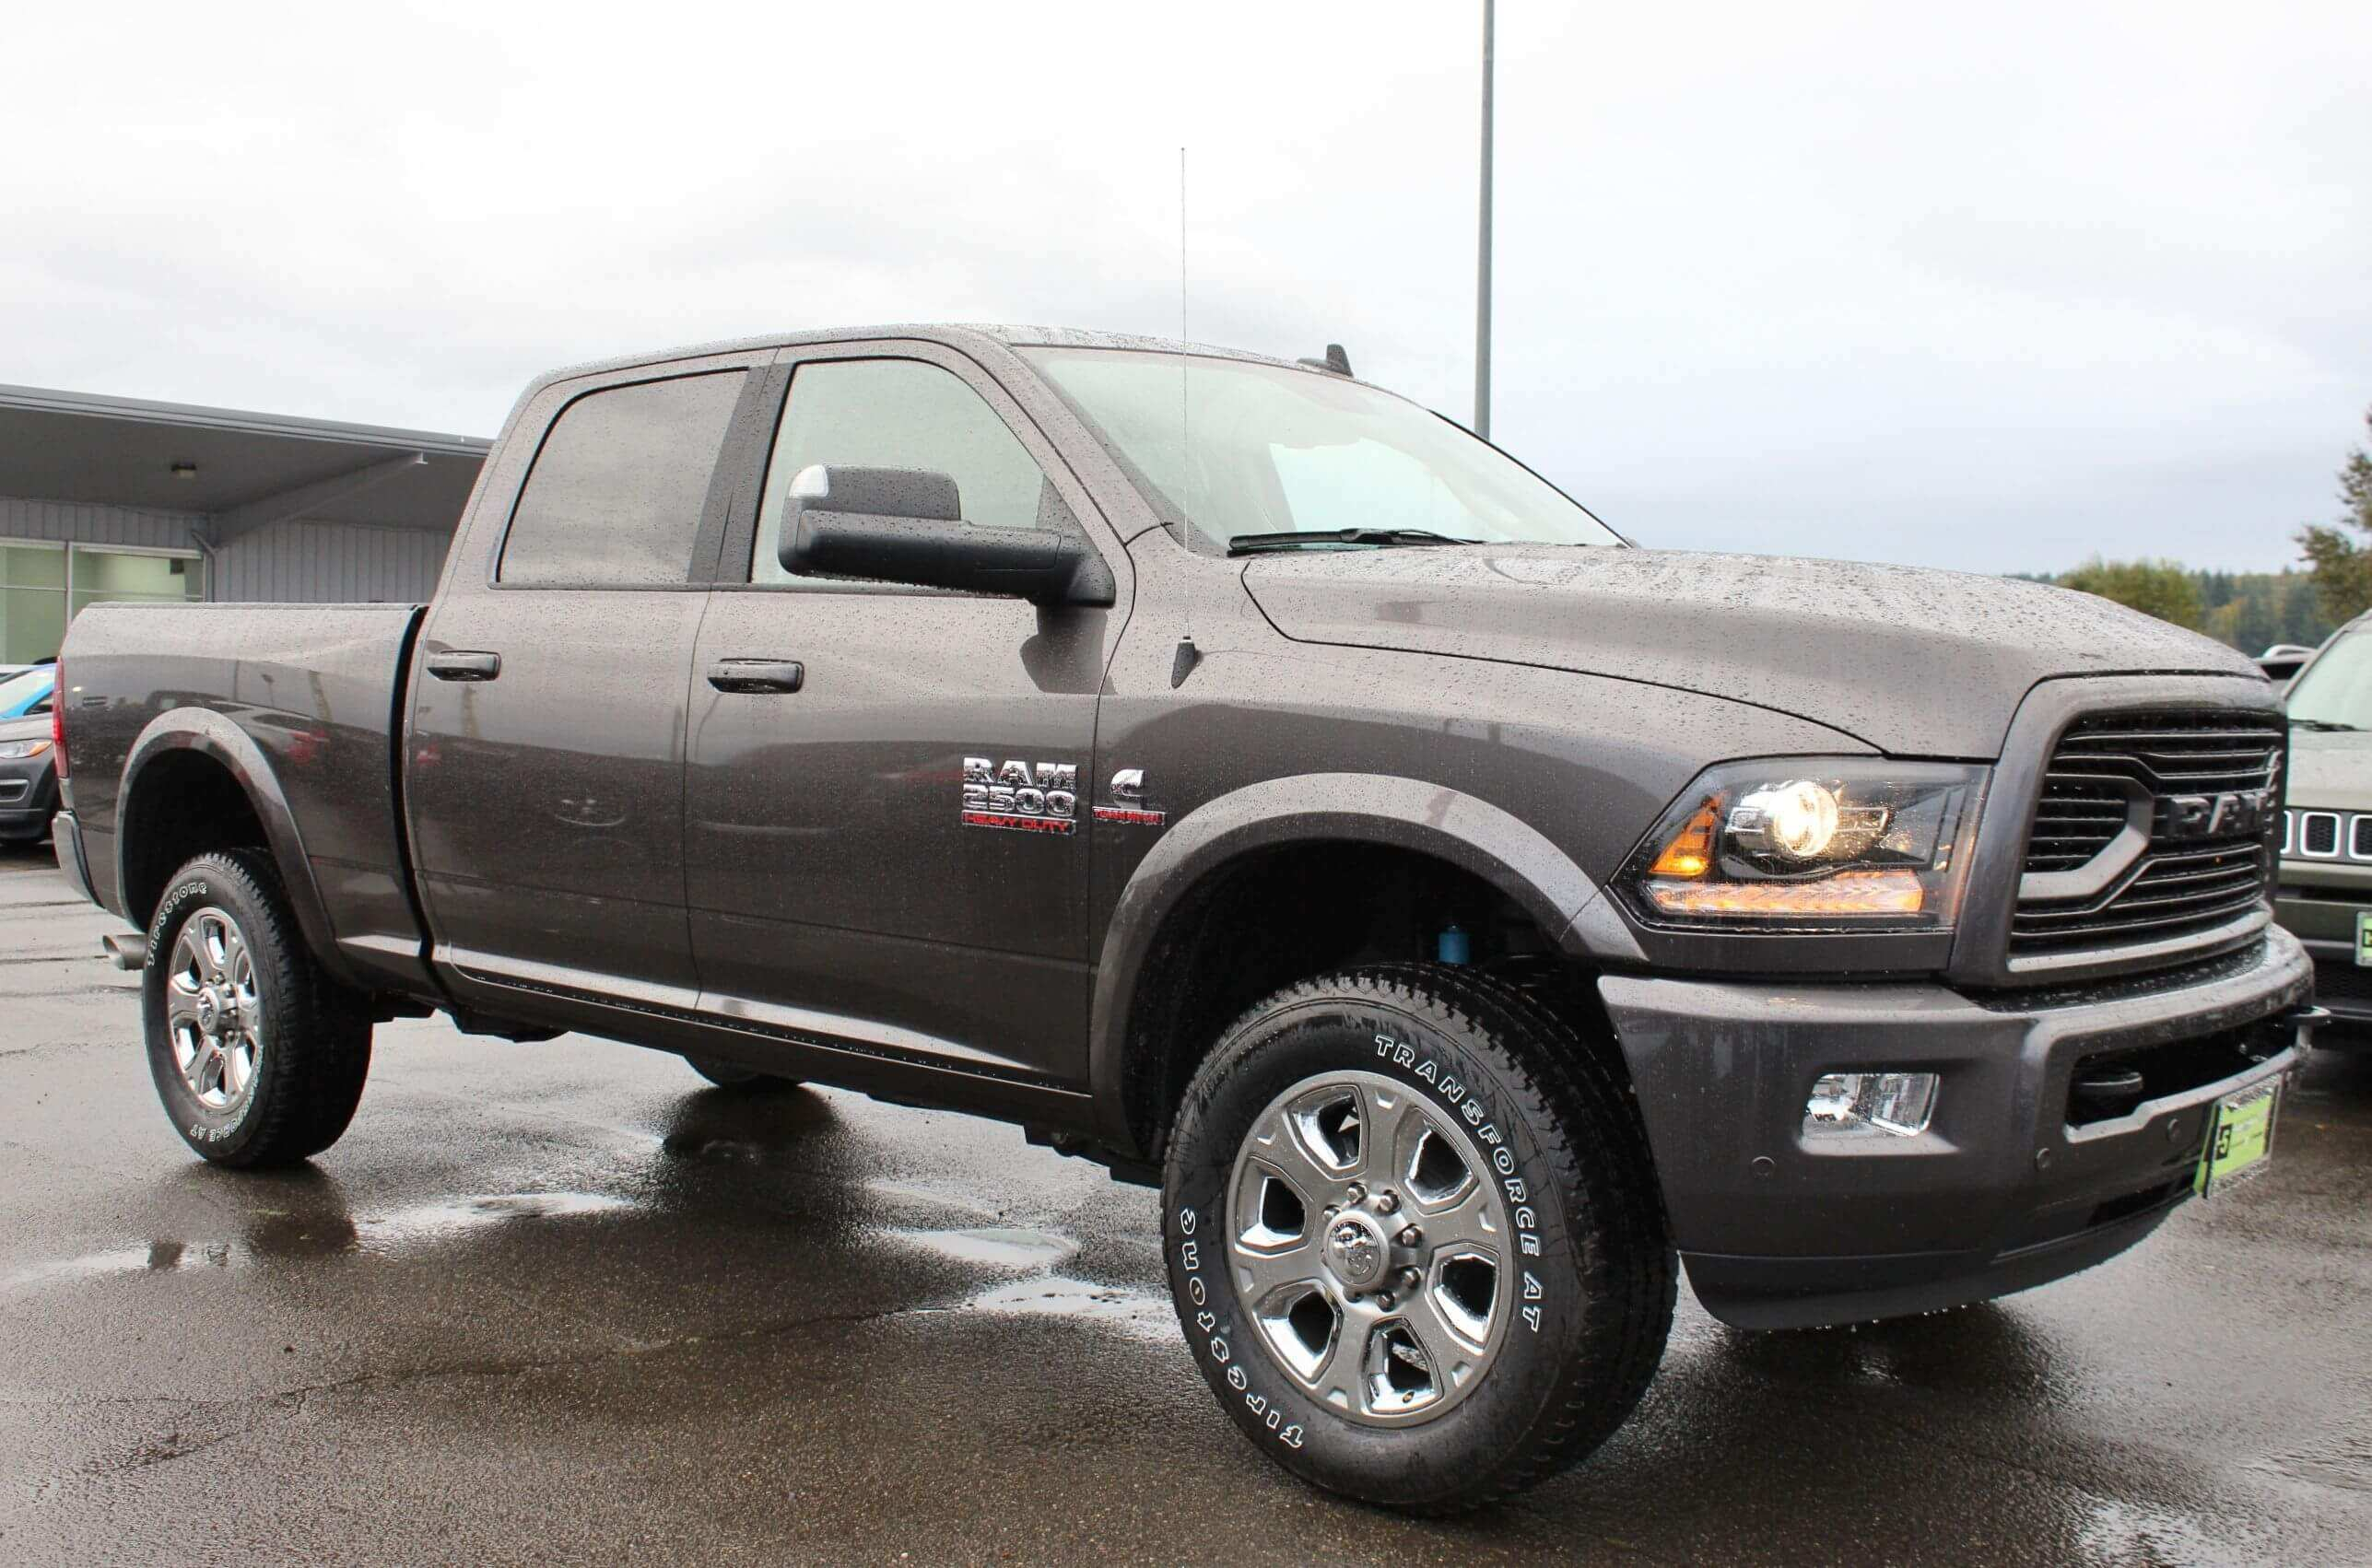 16 New 2020 Dodge Ram 2500 For Sale Performance and New Engine with 2020 Dodge Ram 2500 For Sale